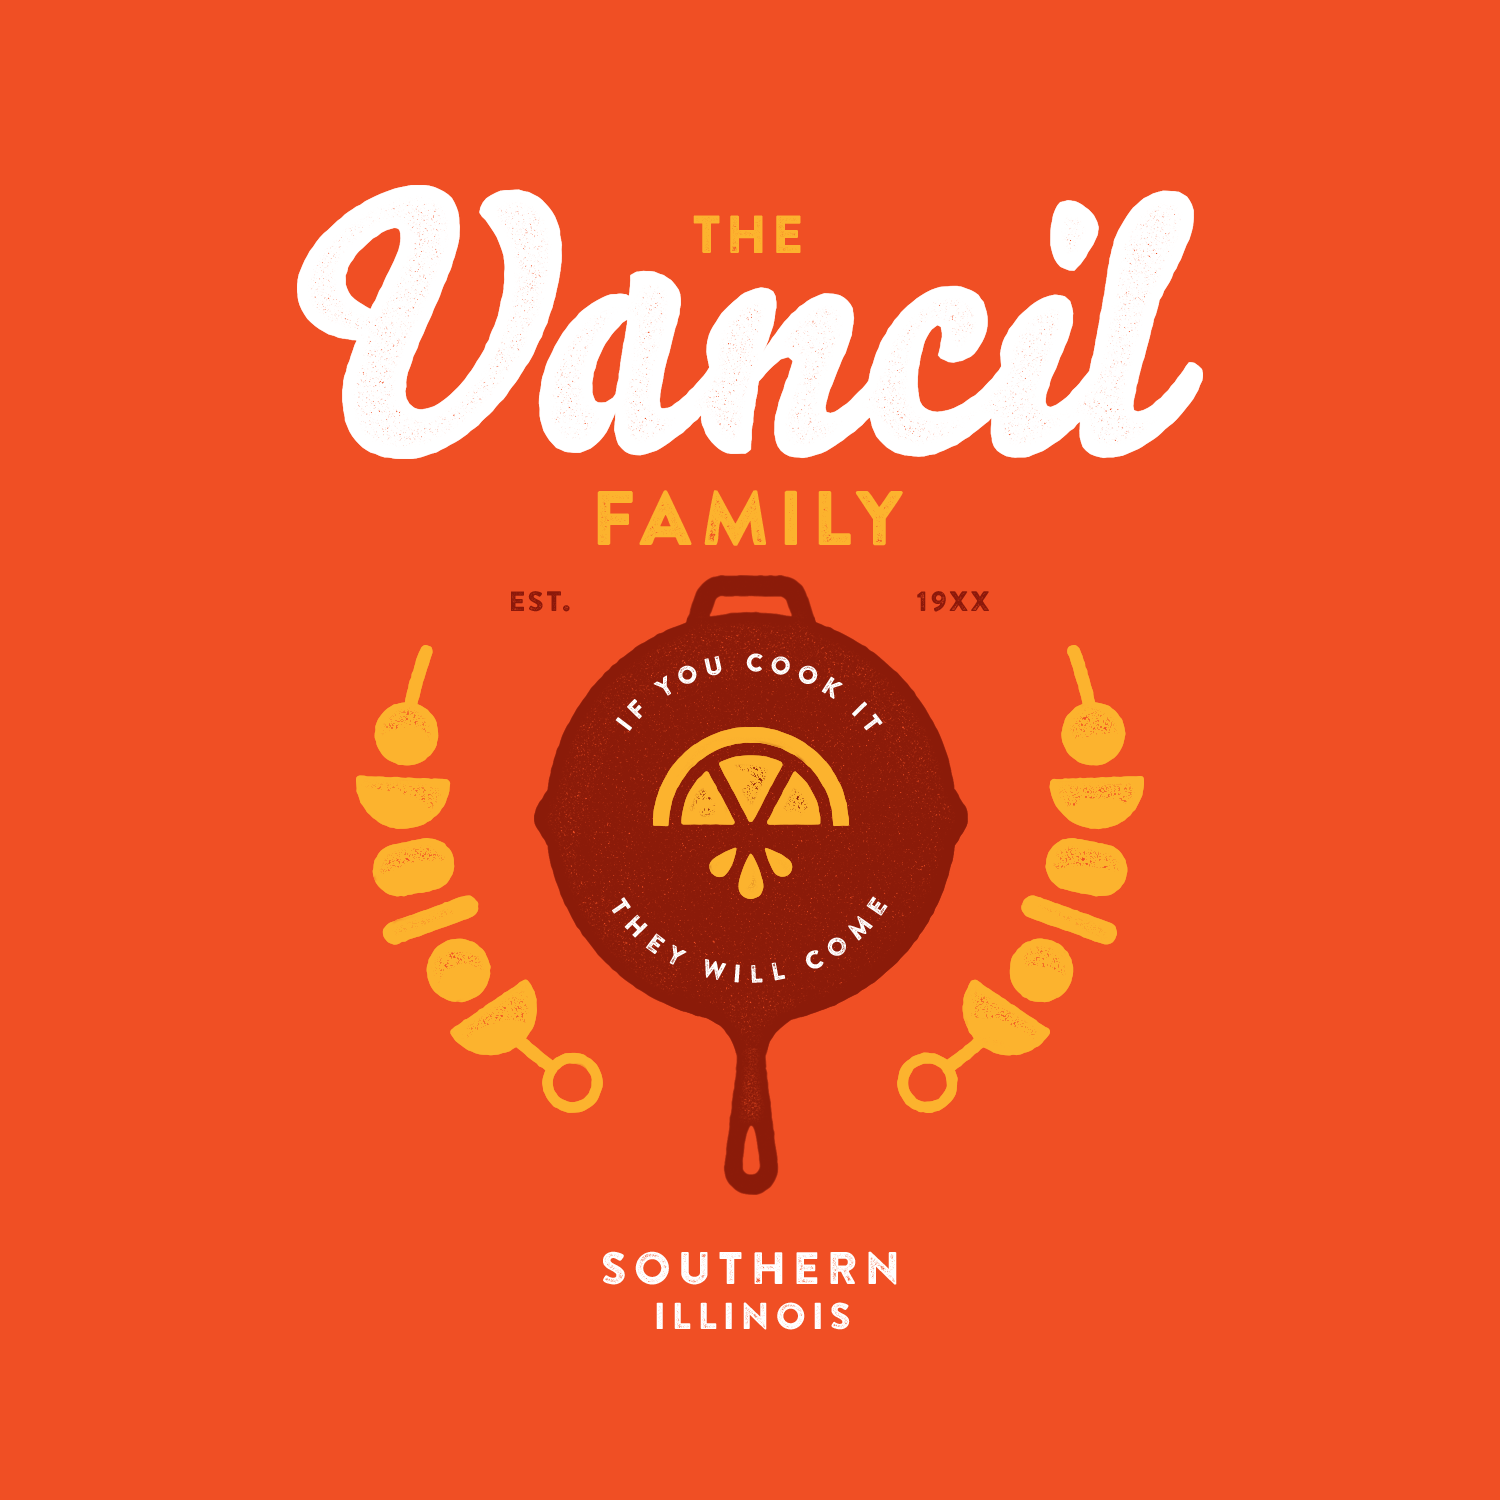 Vancil Family Crest - image 2 - student project